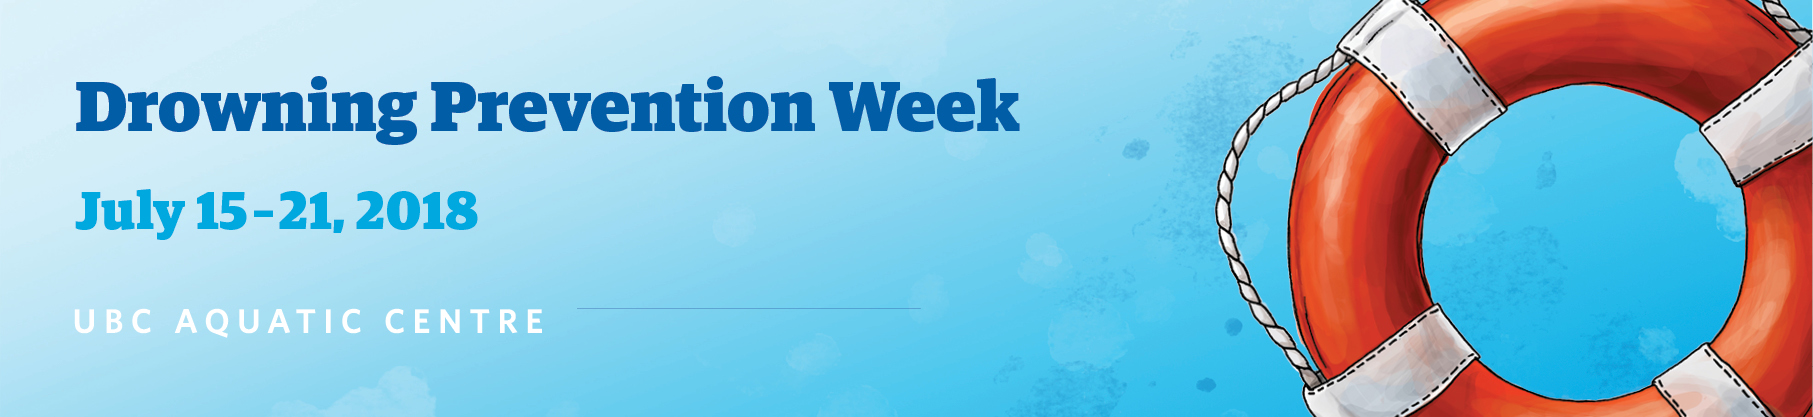 Drowning Prevention Week at the UBC Aquatic Centre - July 15-21, 2018